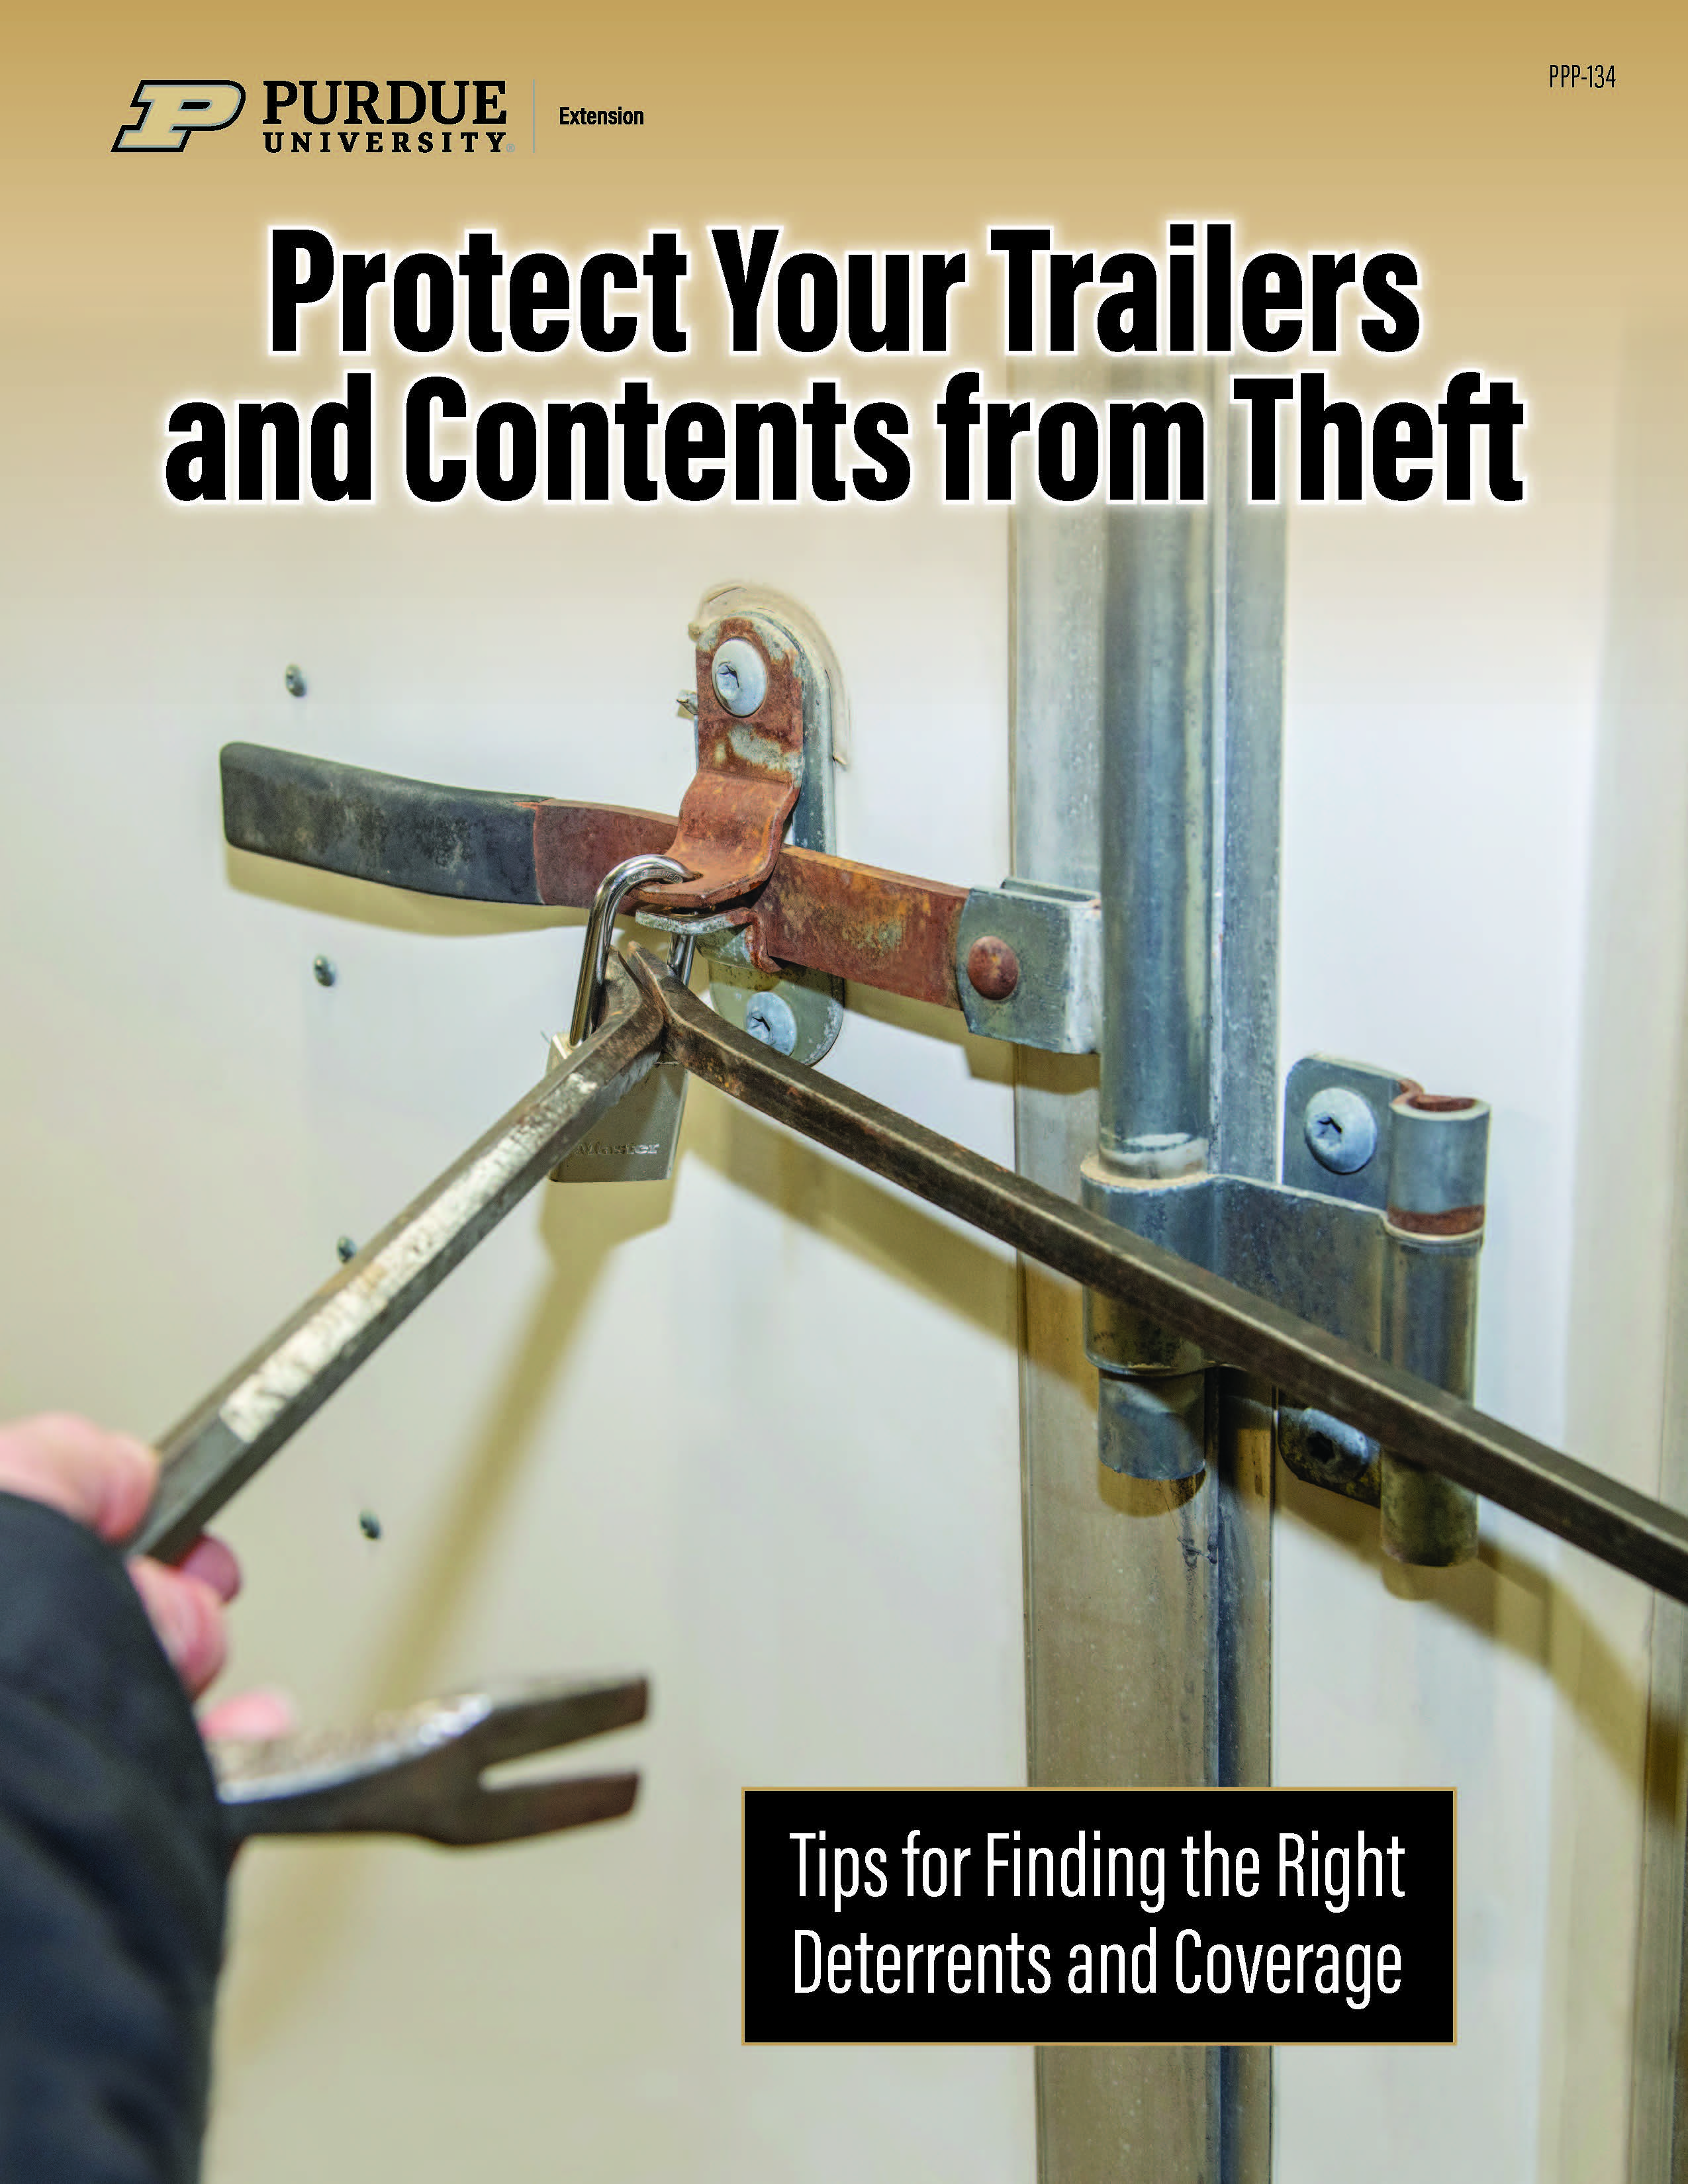 Protect Your Trailers and Contents from Theft: Tips for Finding the Right Deterrents and Coverage